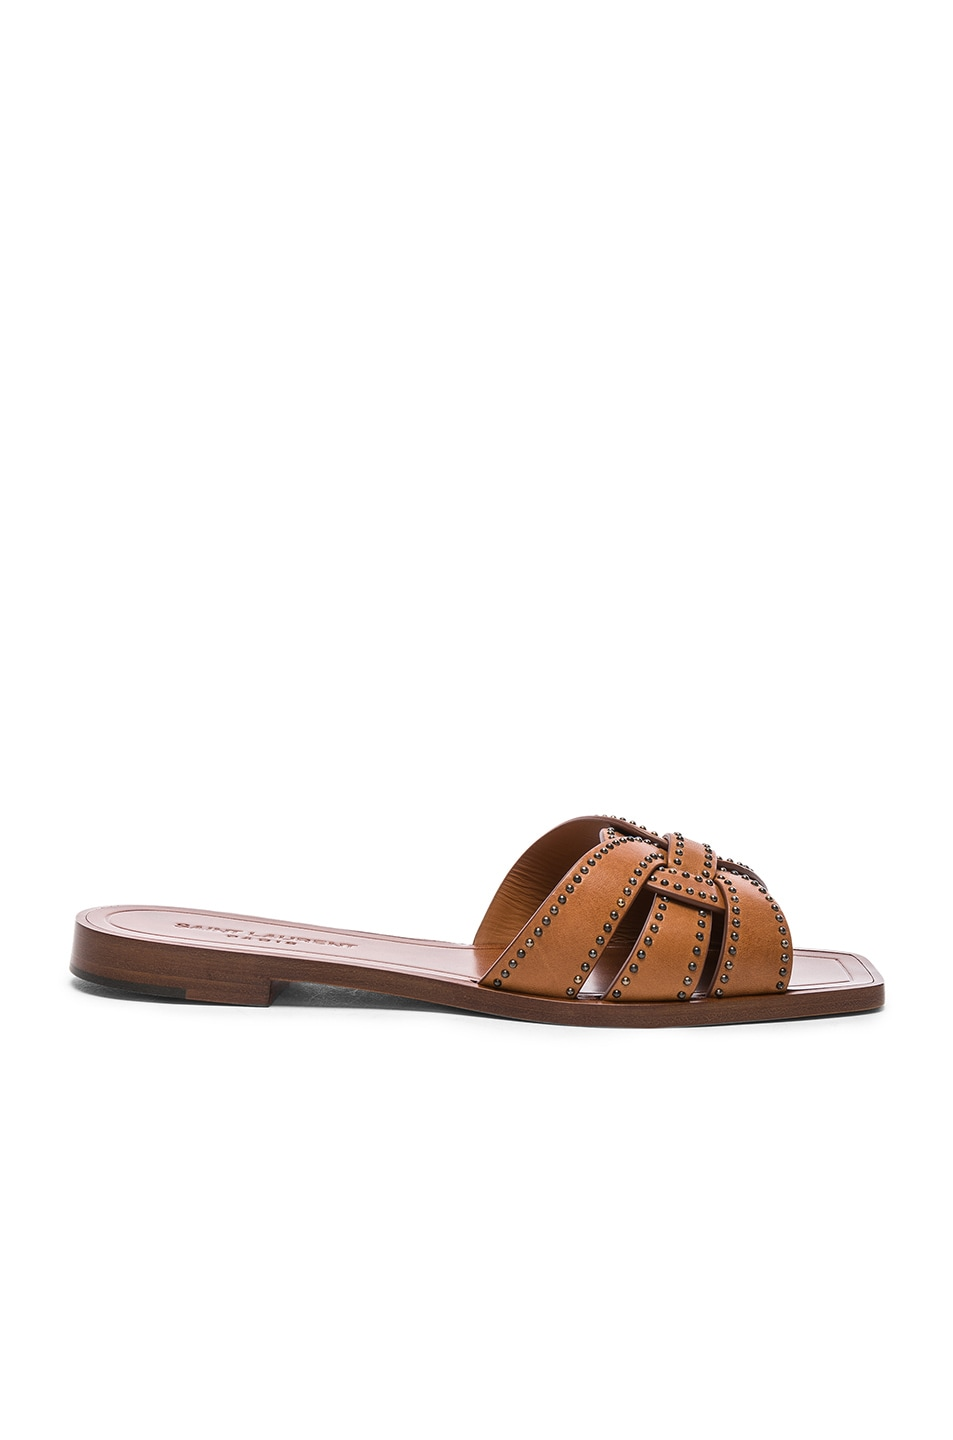 Image 1 of Saint Laurent Studded Leather Nu Pieds Slides in Amber